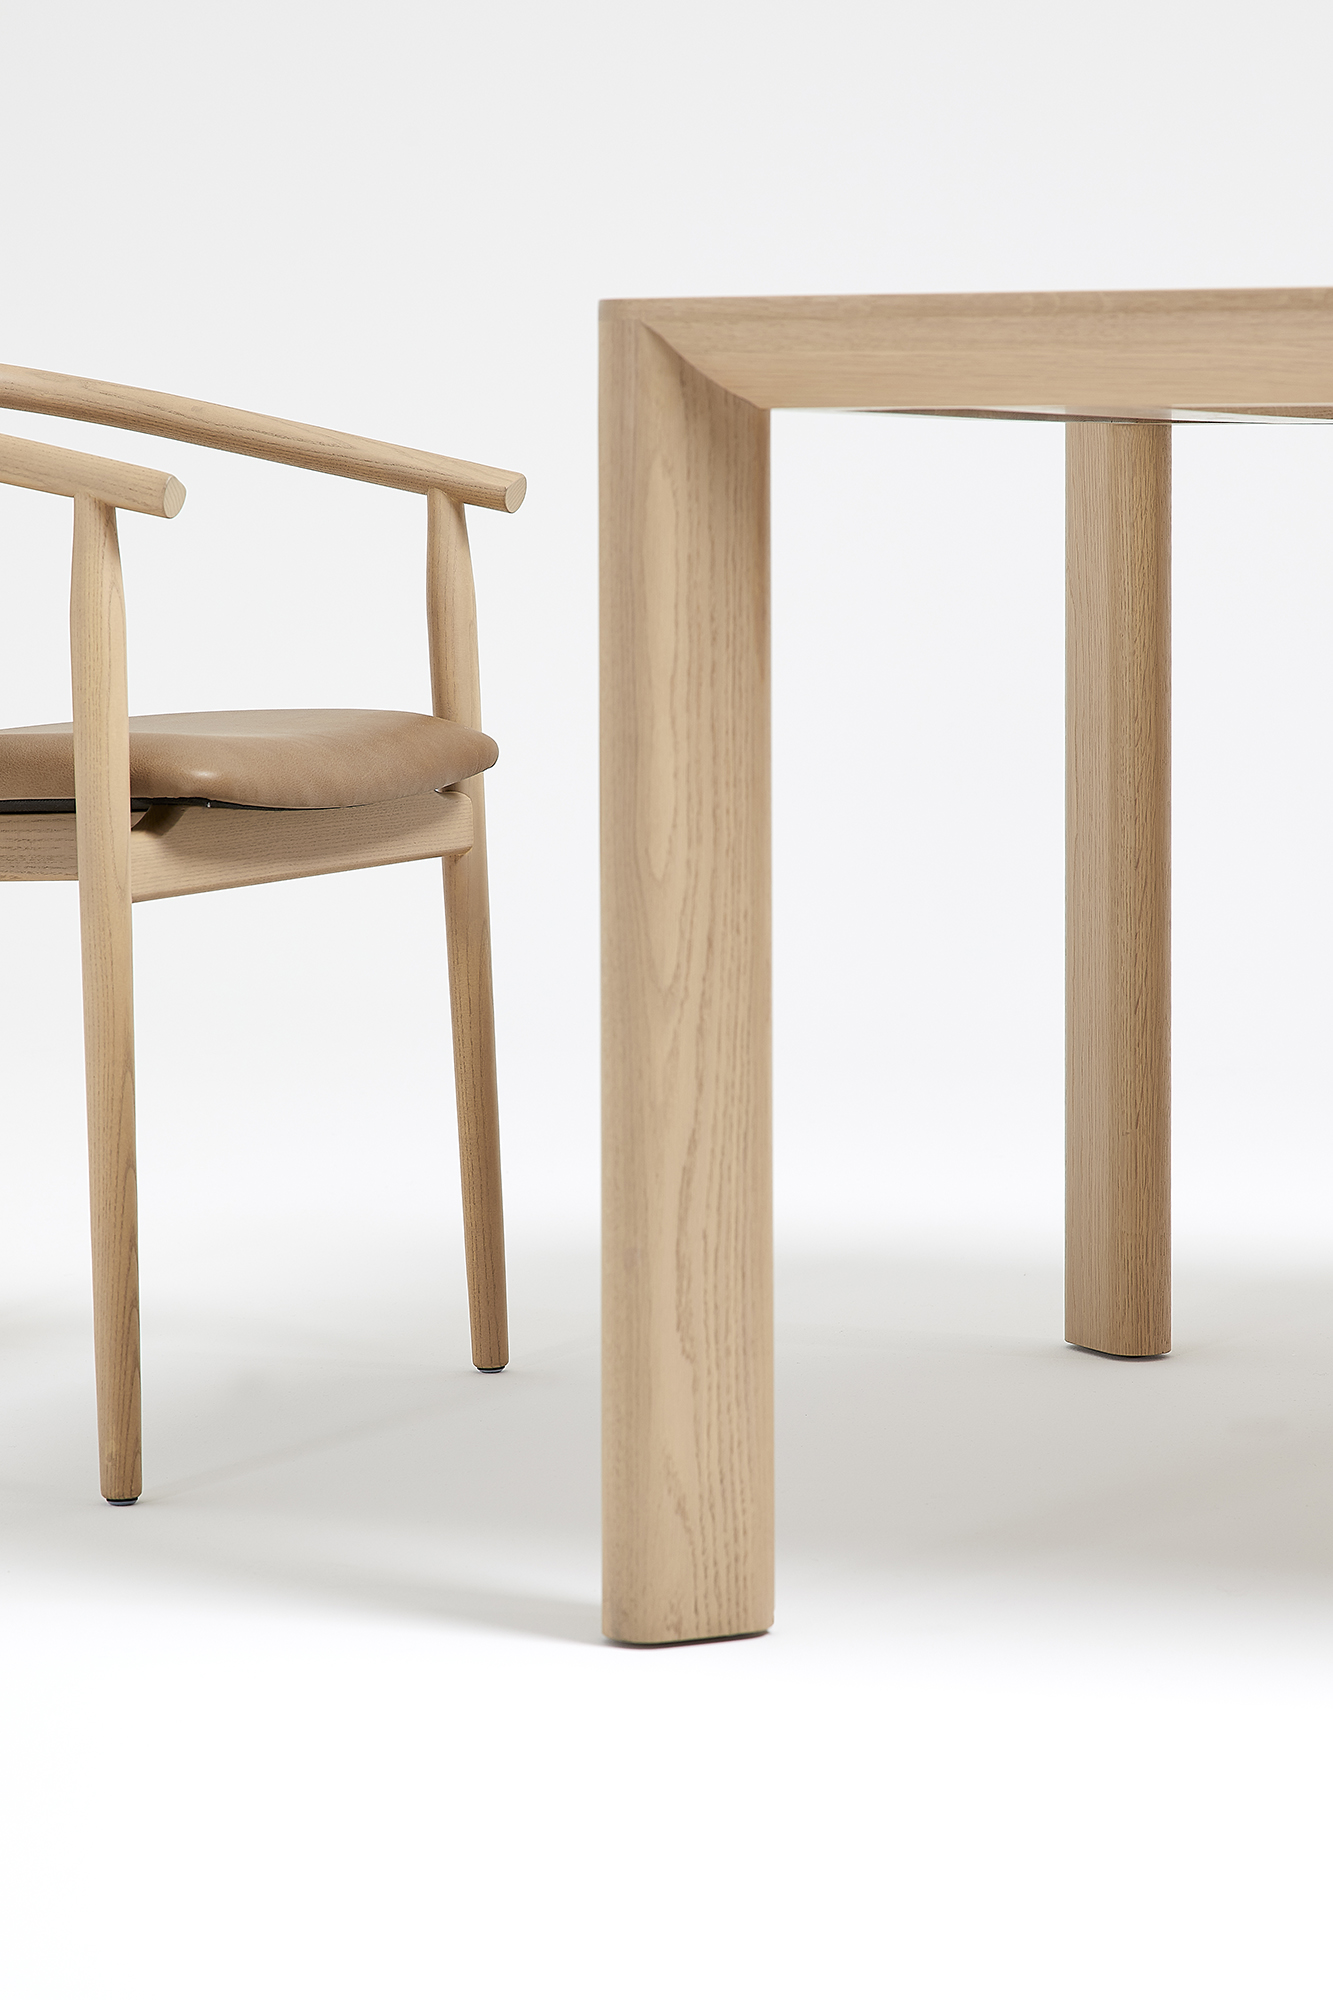 ADV_180911_O-Chair-Table-Detail-0536_001.jpg